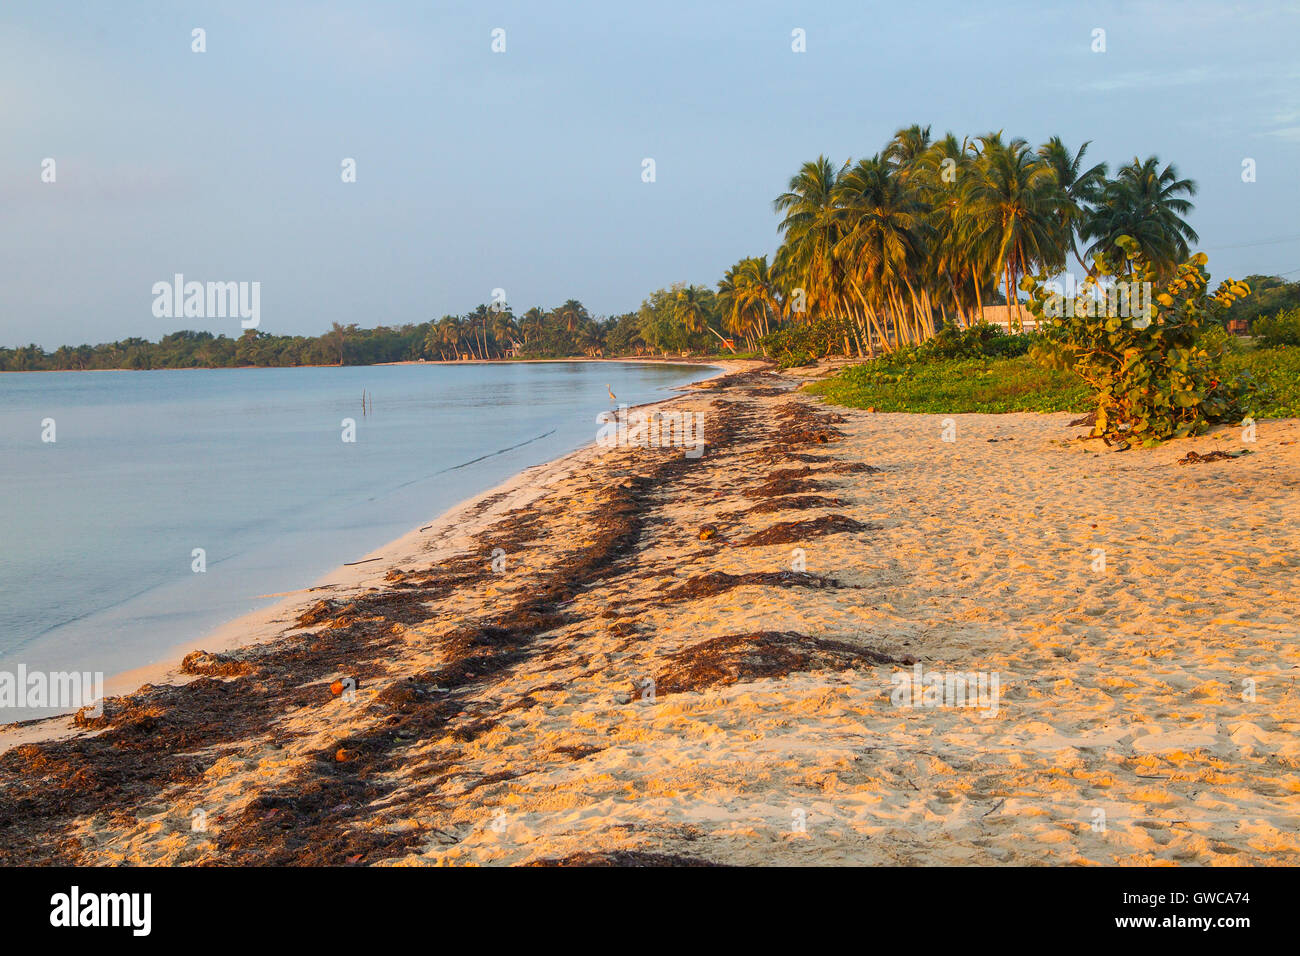 view of the Bay of PIgs or Bahia de Cochinos, Cuba, site of the failed invasion - Stock Image